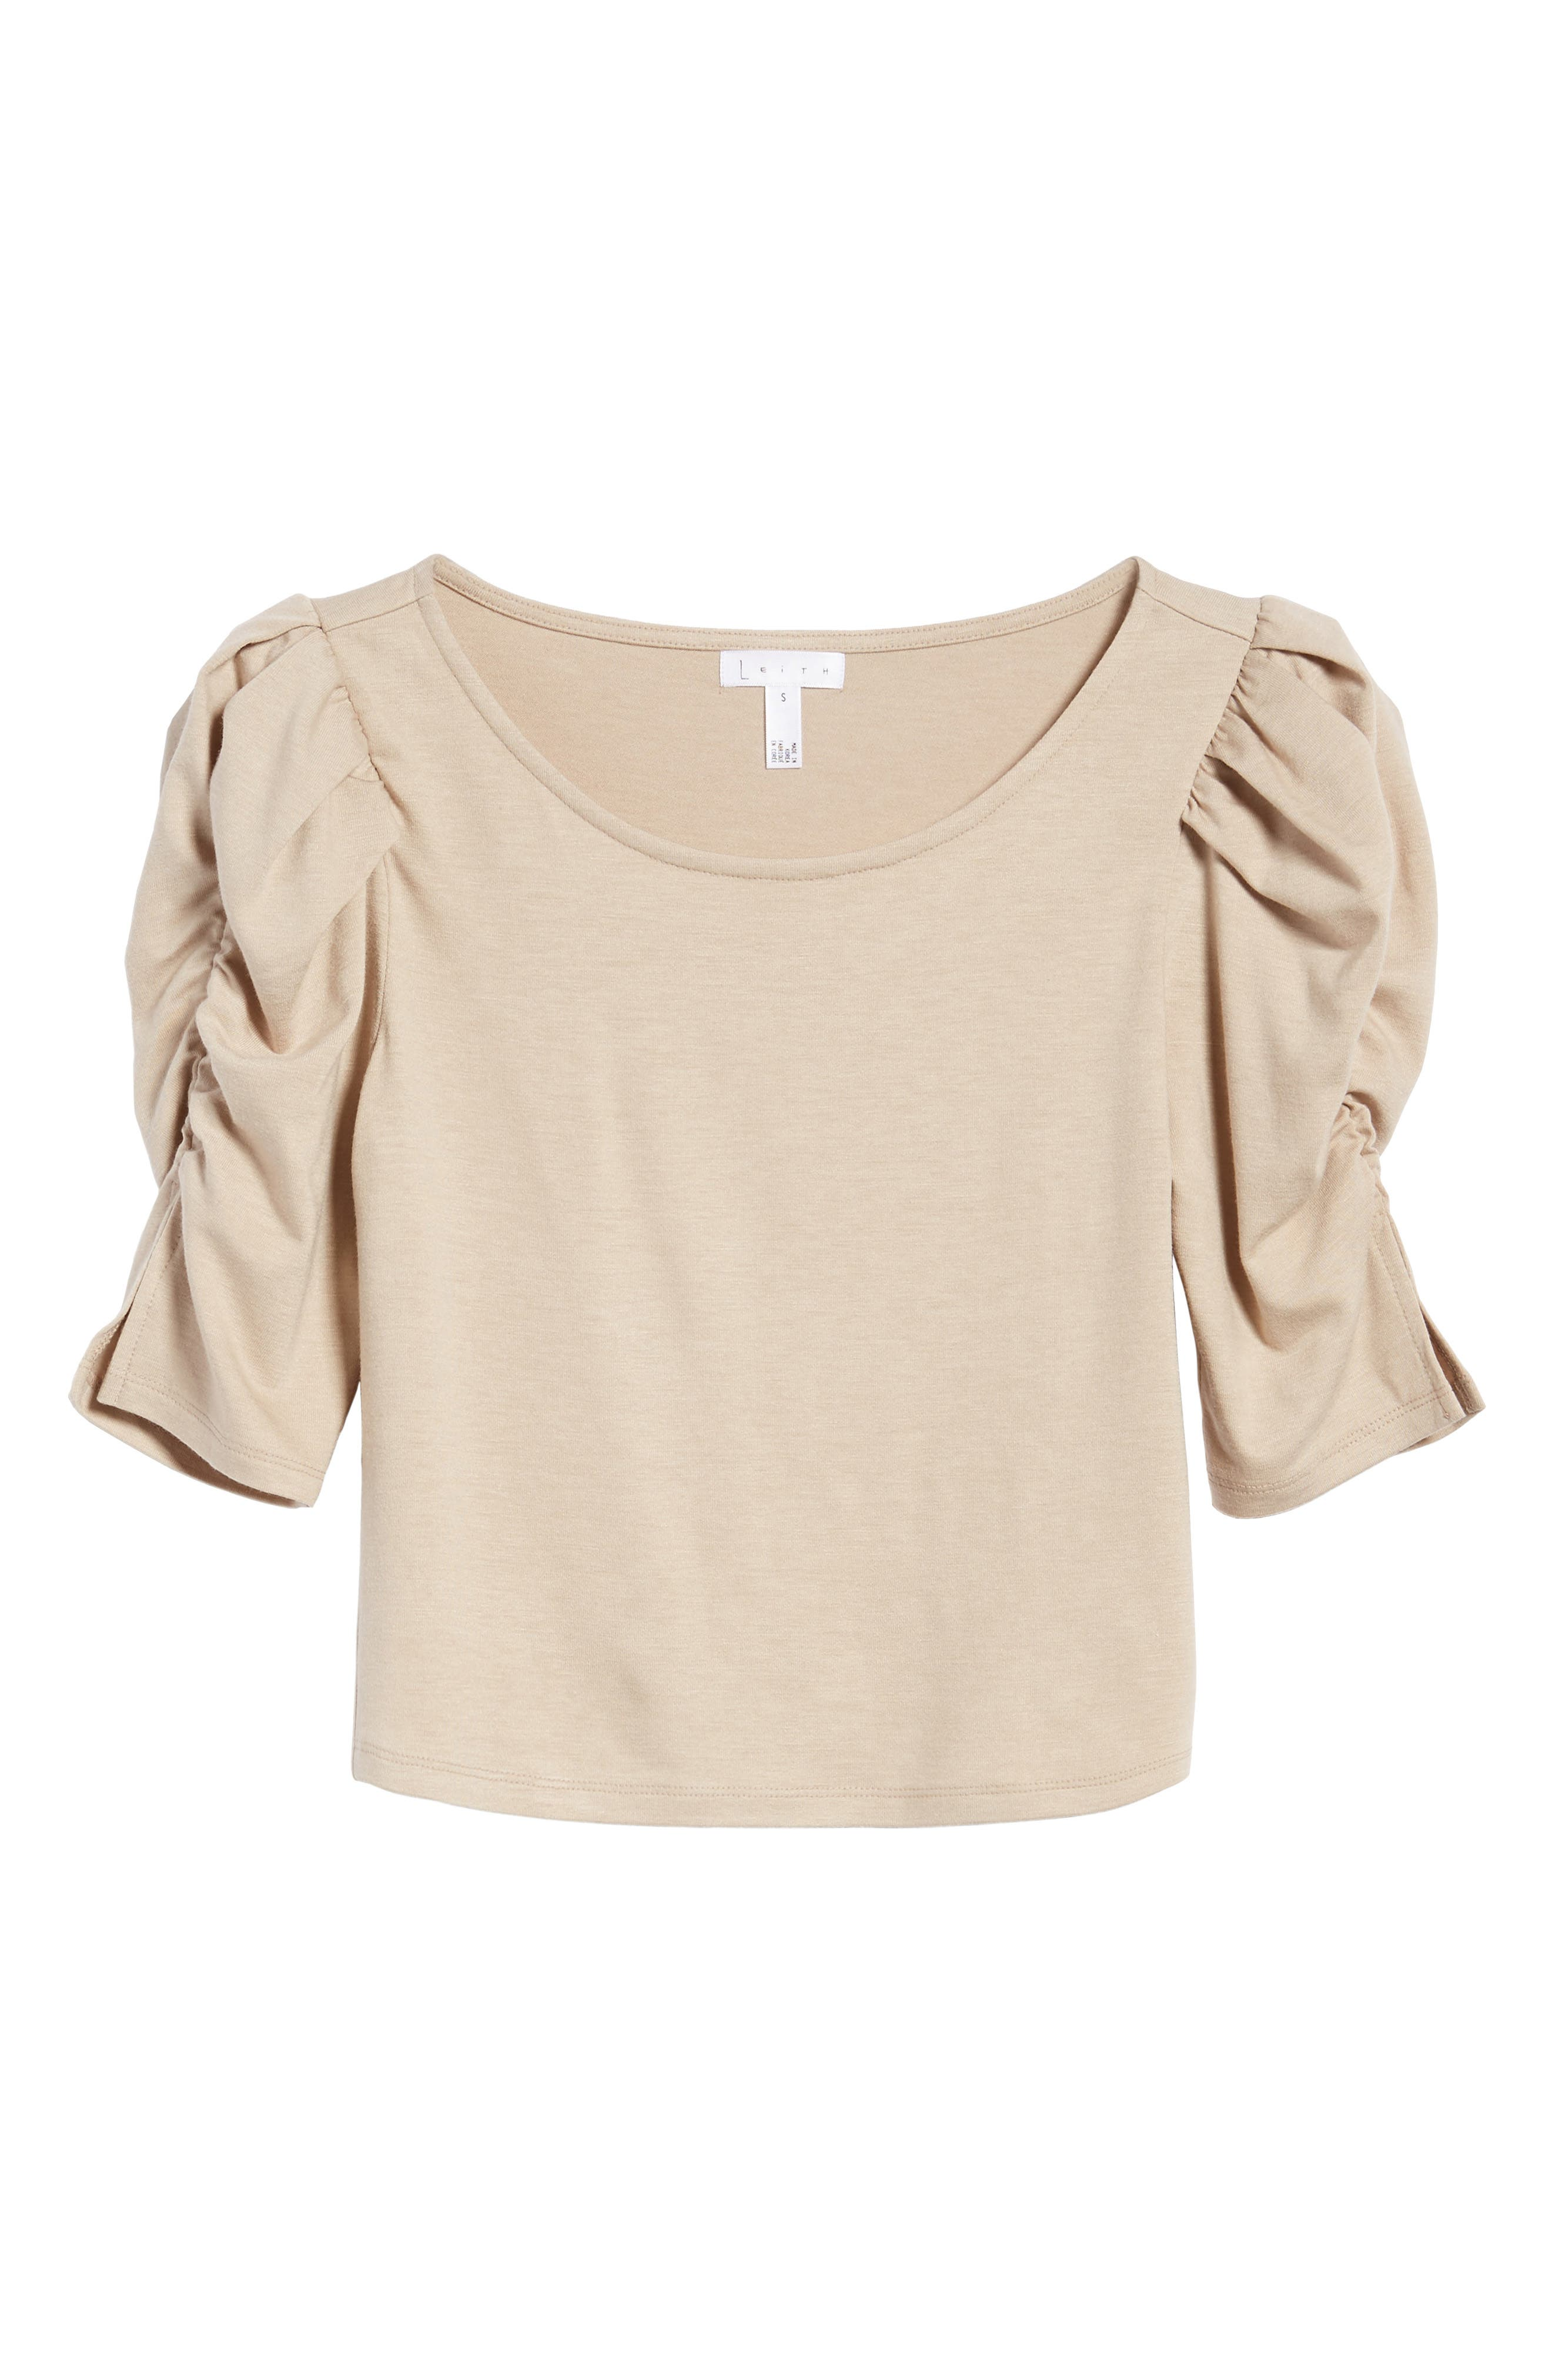 Puff Sleeve Top,                             Alternate thumbnail 6, color,                             270